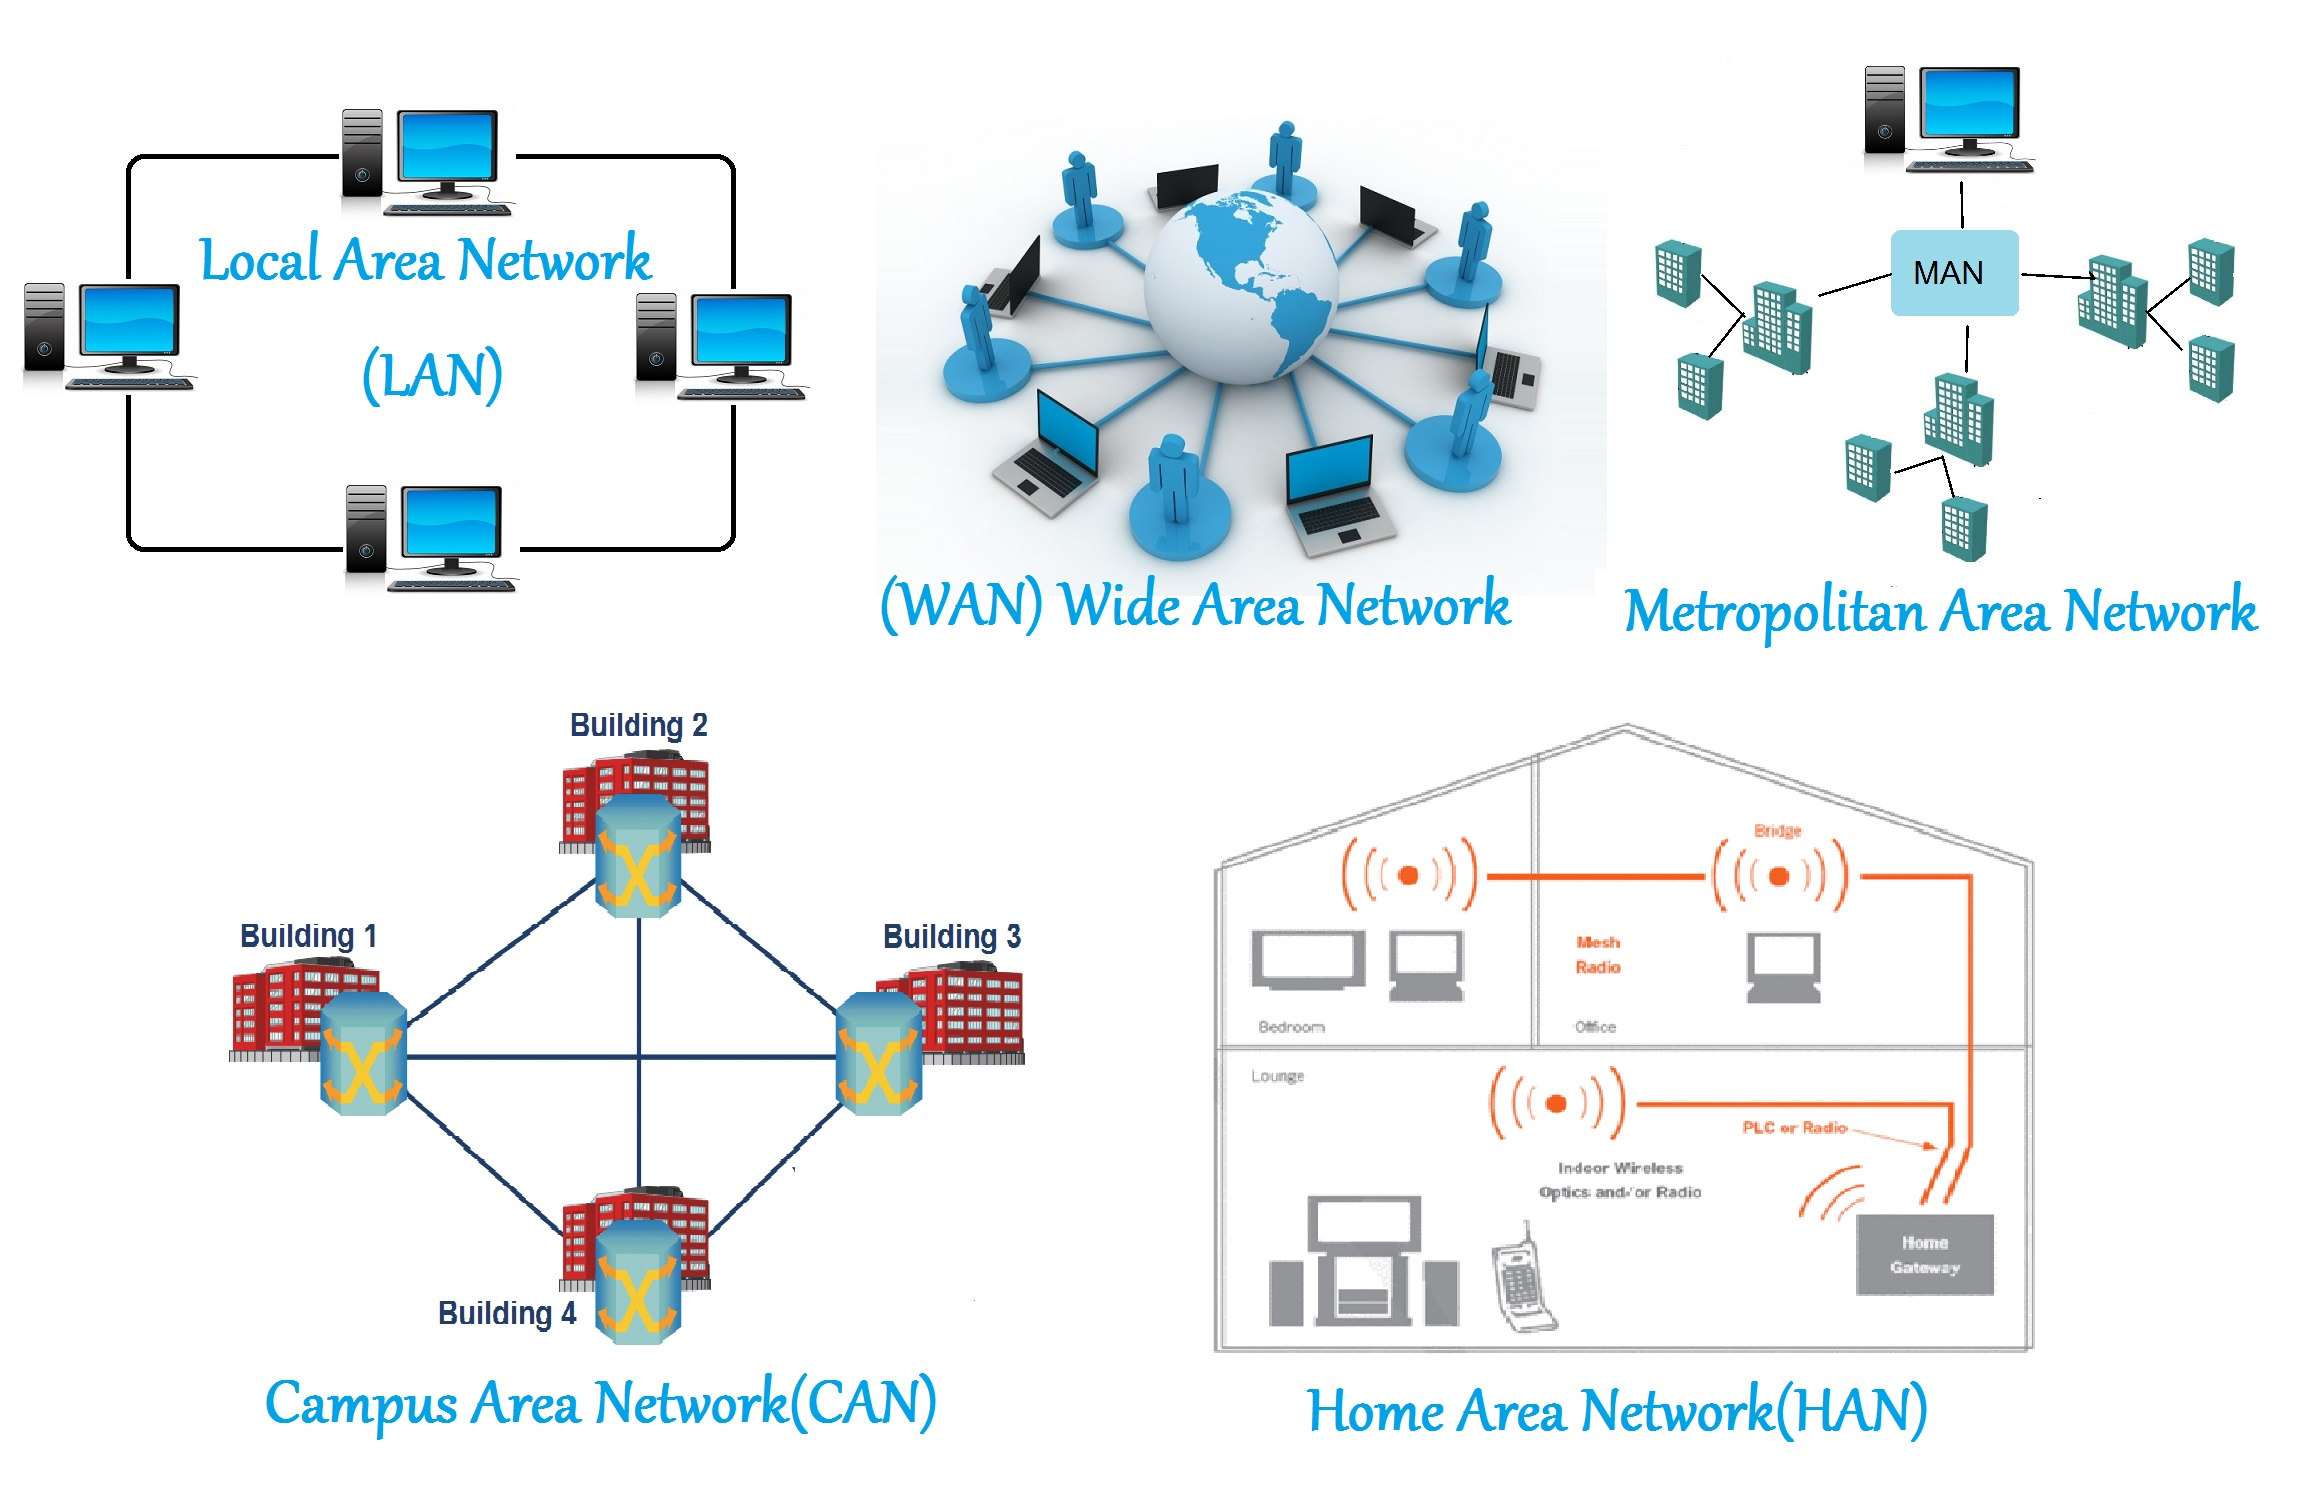 lan or local area network it is a computer network that covers a small geographical area like an office building school colleges etc where wired or